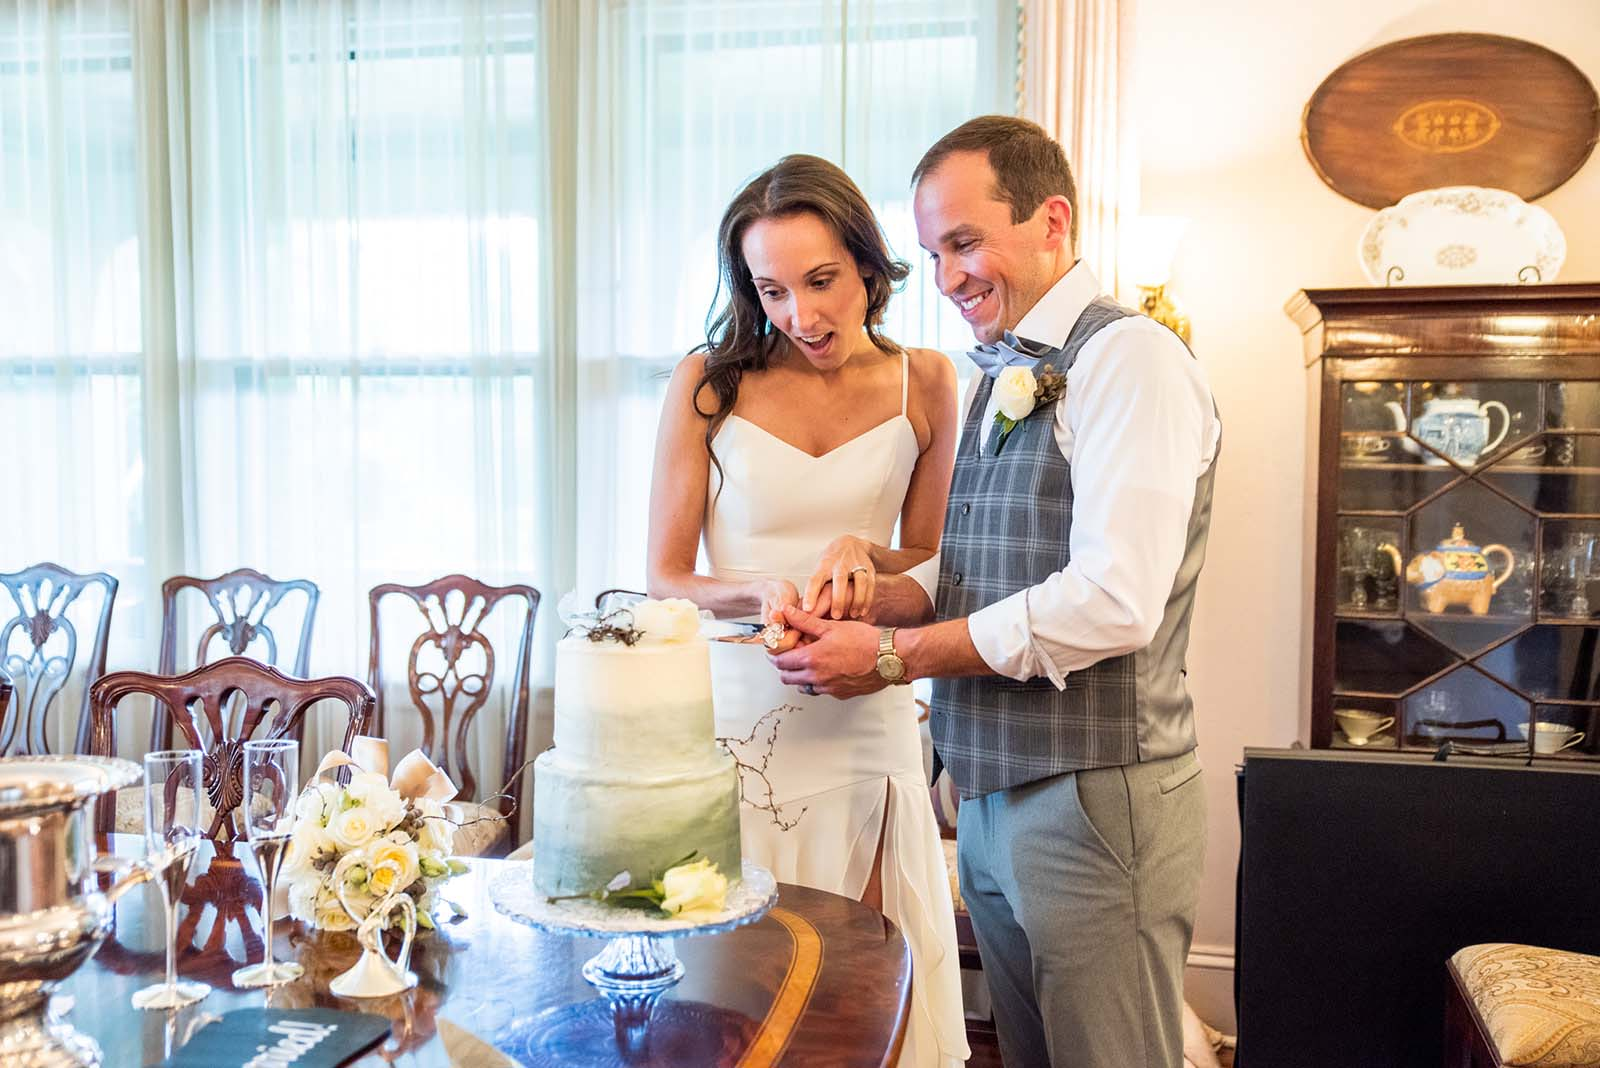 The newlyweds cutting together a cake in the dining room of the Asheville bnb during an intitmate wedding ceremony.